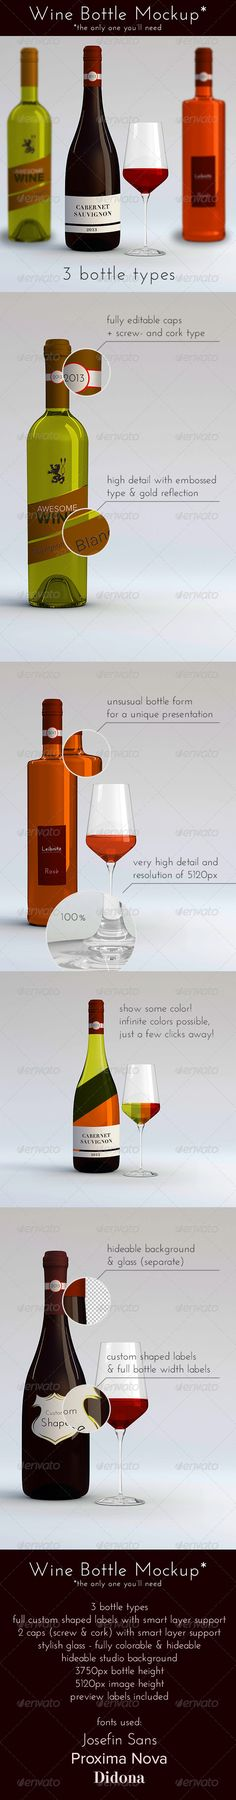 3 Wine Bottles v2 with Glass by danielwinter A mockup for 3 highly detailed wine bottles and a wine glass. The label of the bottles is highly customizeable with custom shapes